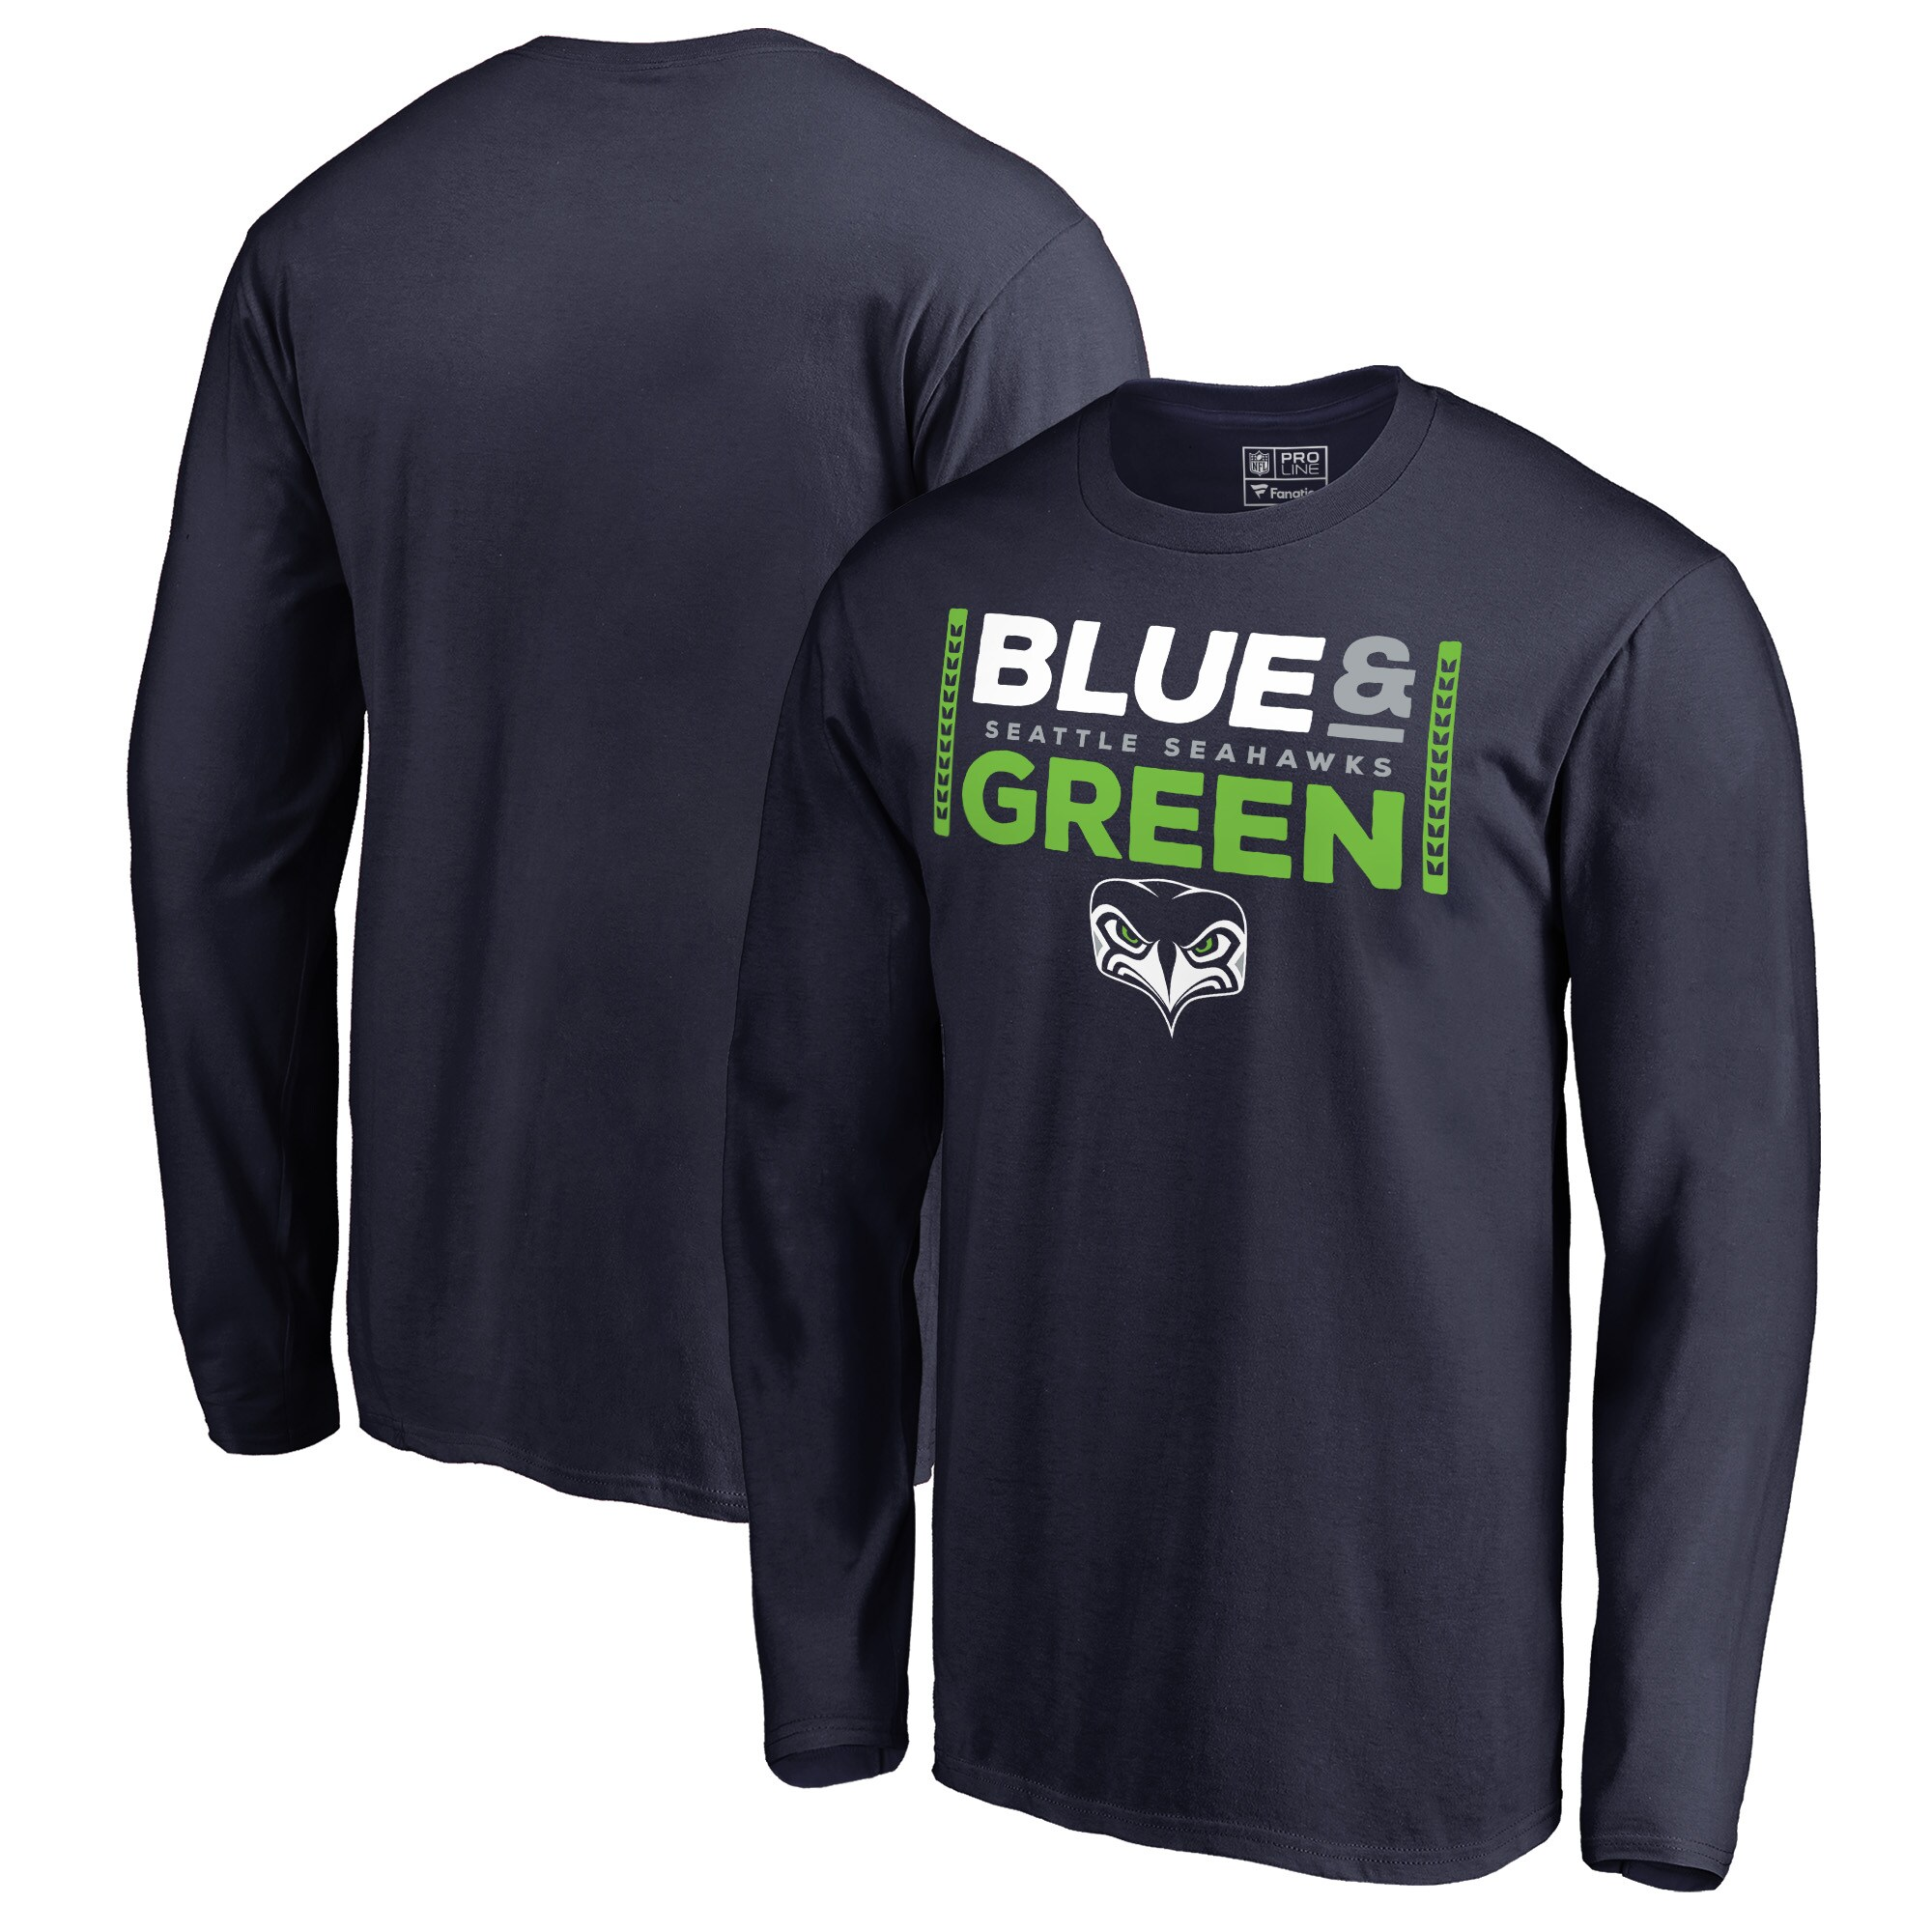 Seattle Seahawks NFL Pro Line by Fanatics Branded Alternate Team Logo Gear Blue & Green Big & Tall Long Sleeve T-Shirt - College Navy